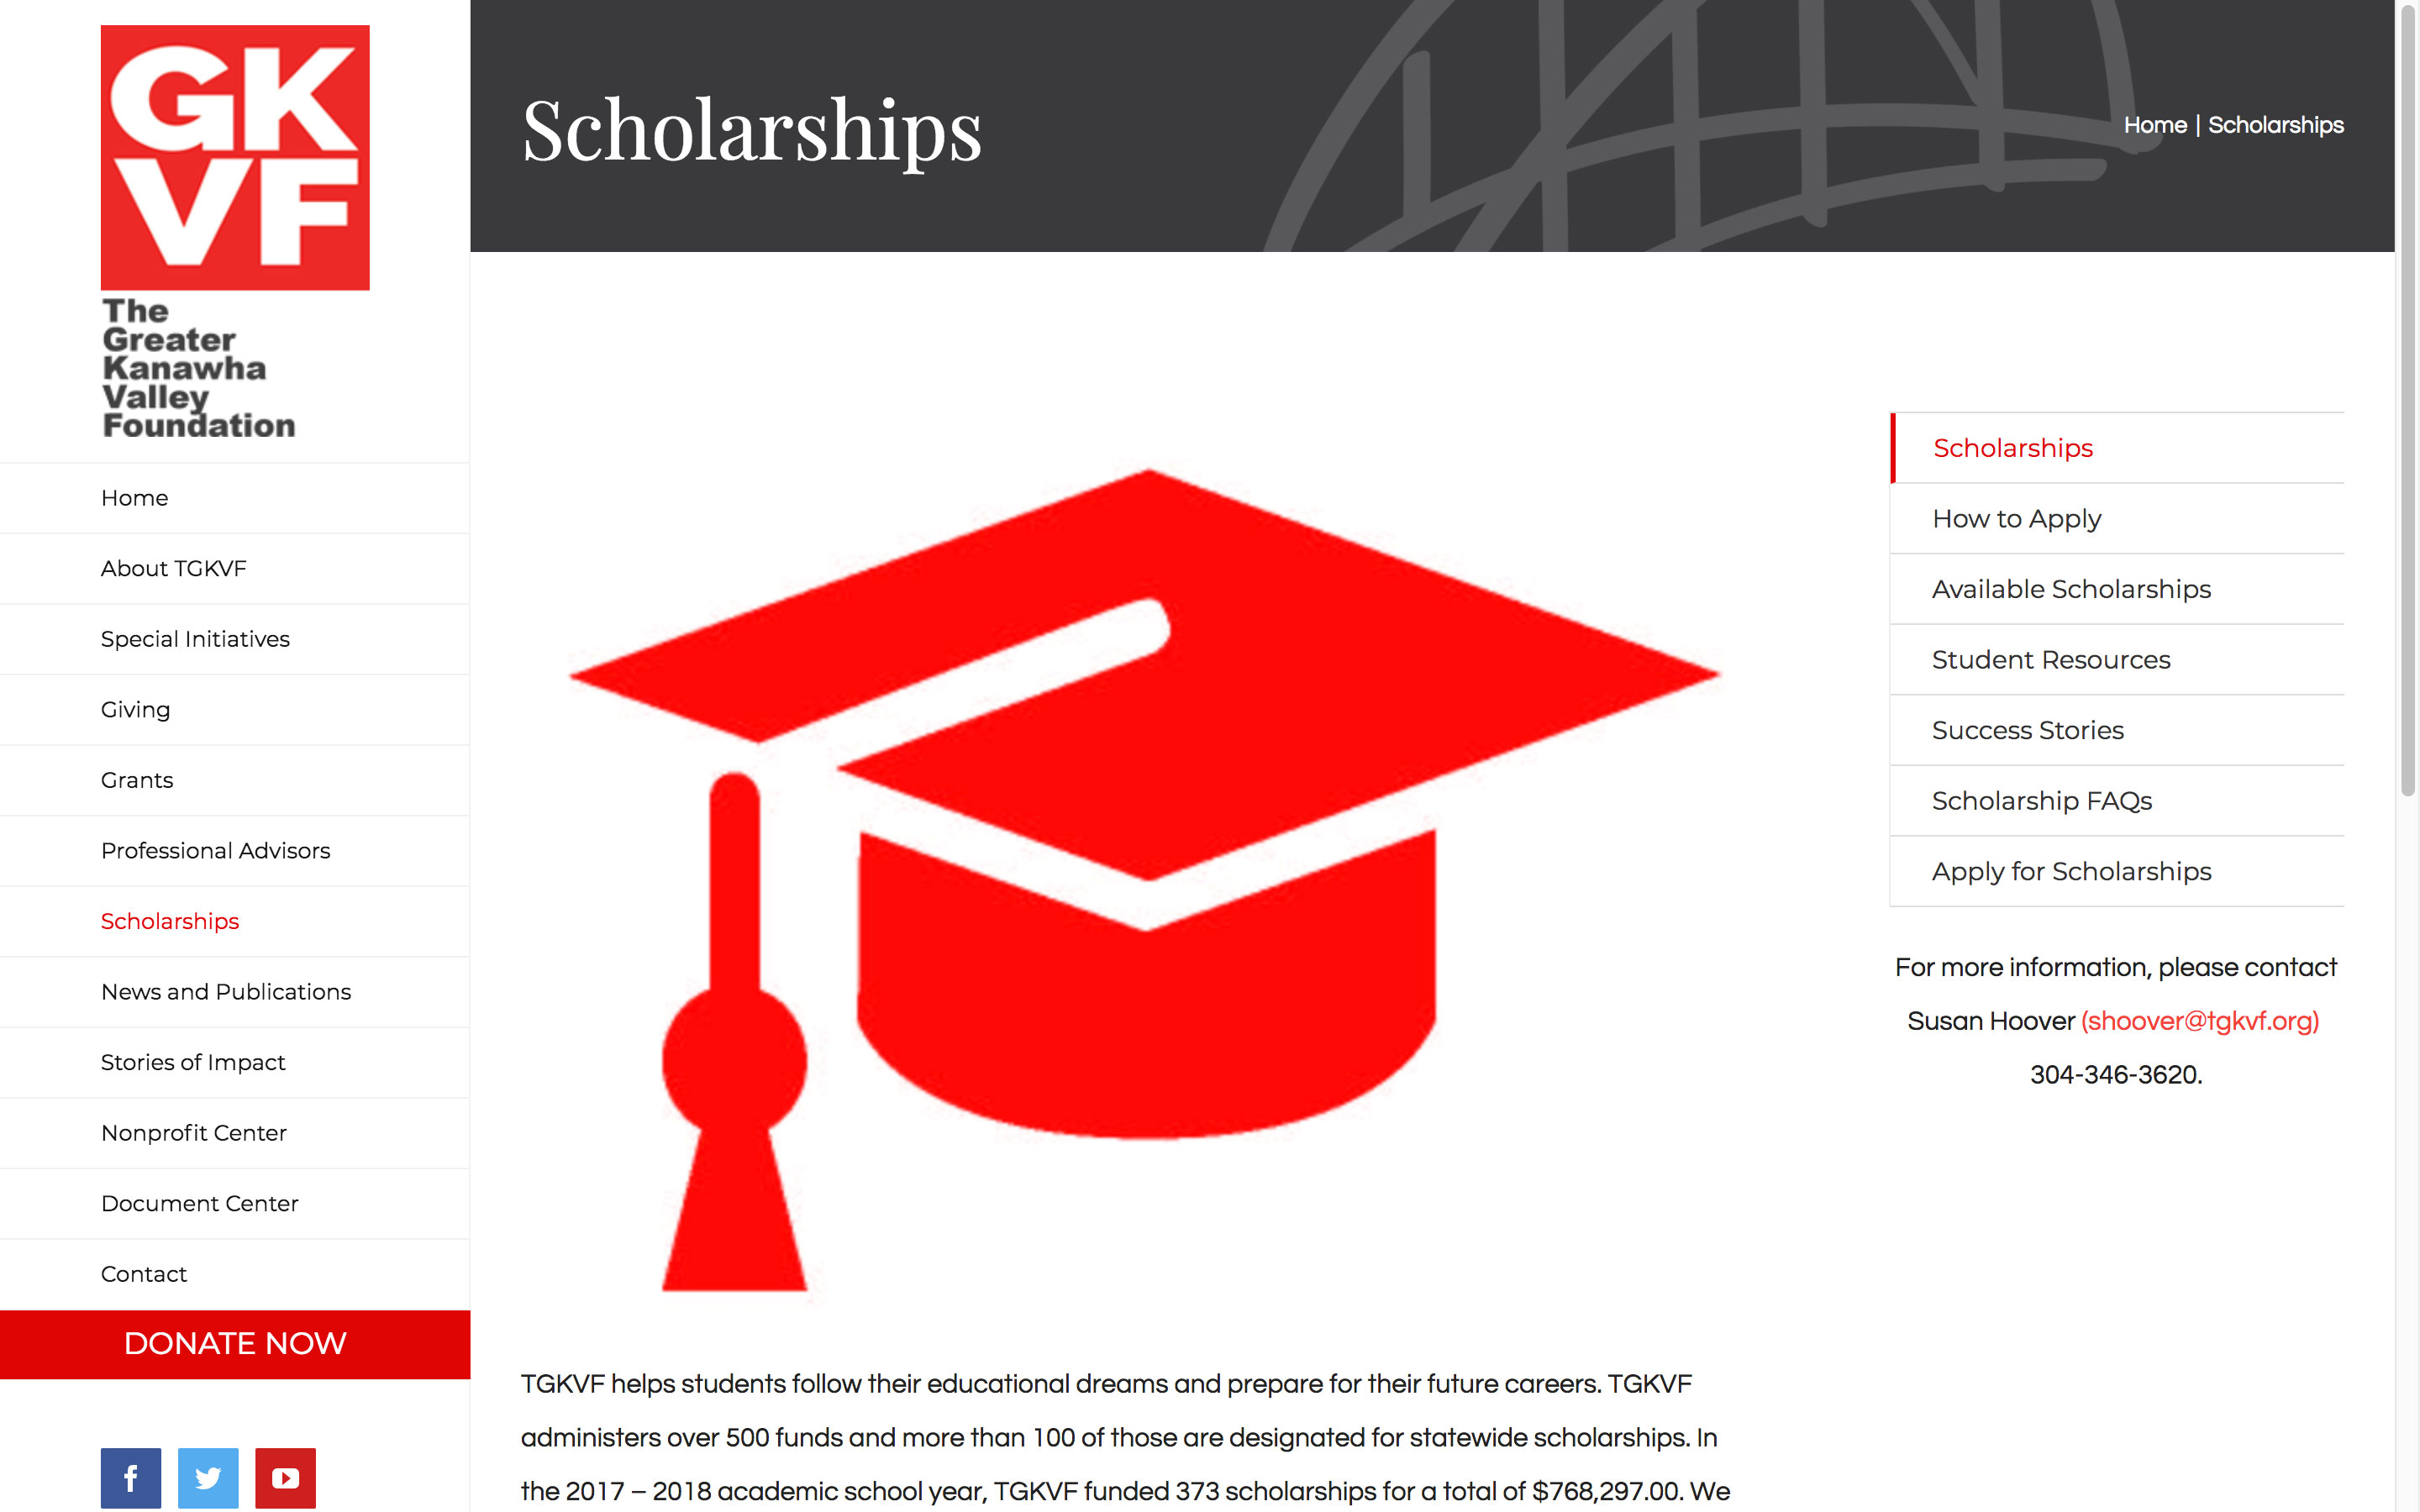 The Greater Kanawha Valley Foundation Scholarships Page Best Websites in WV Charleston Huntington Beckley Princeton Web Design